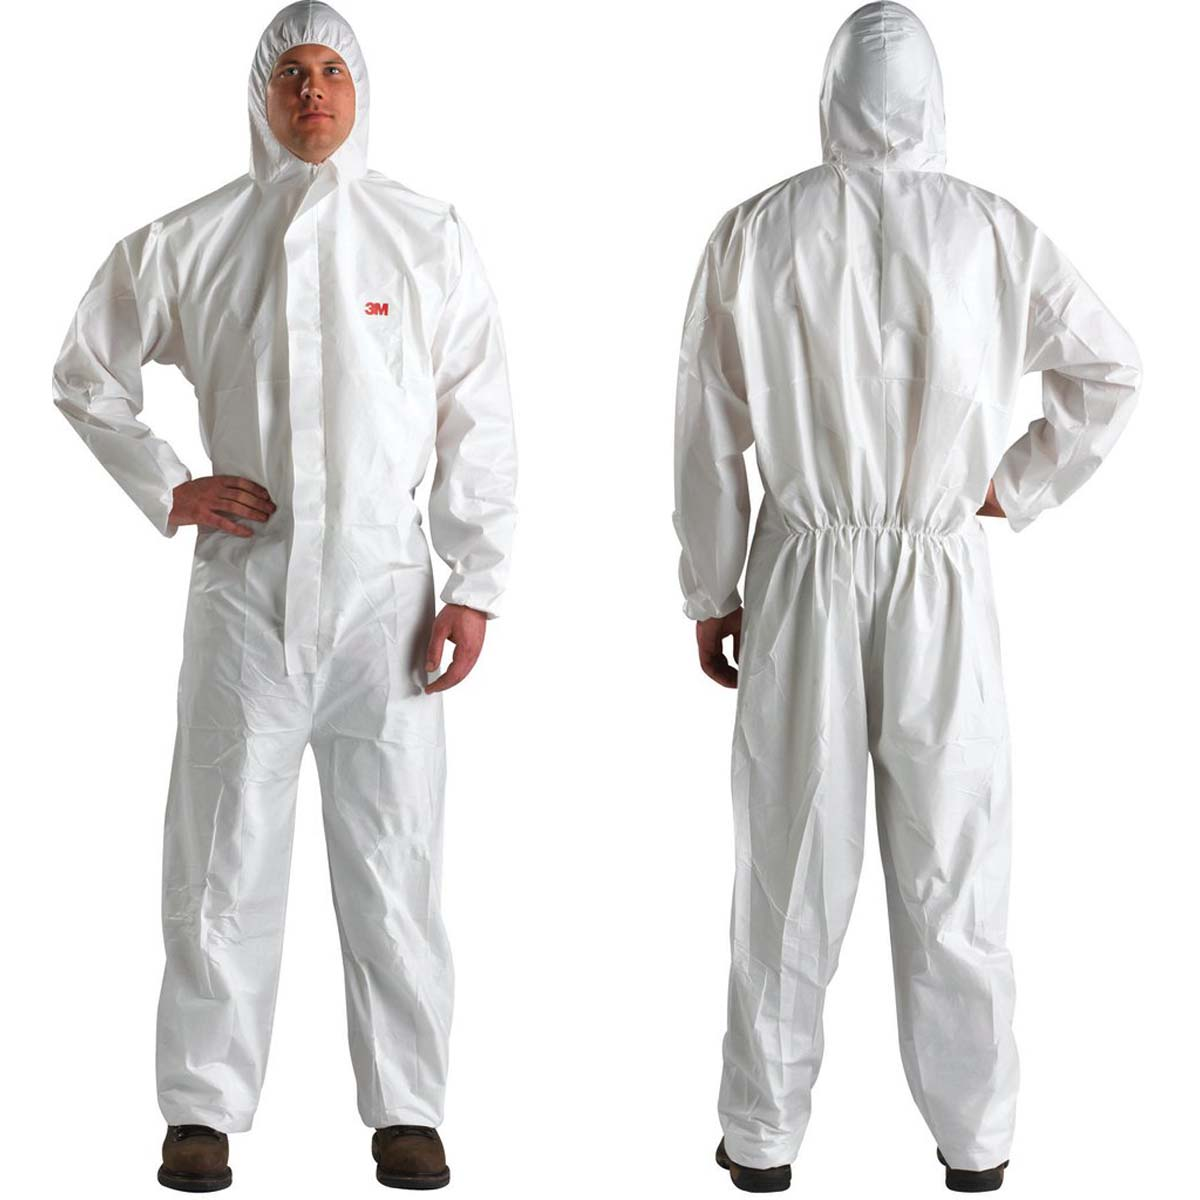 """3Mâ""""¢ Disposable Protective Coverall Safety Work Wear 4510-BLK-XXL"""